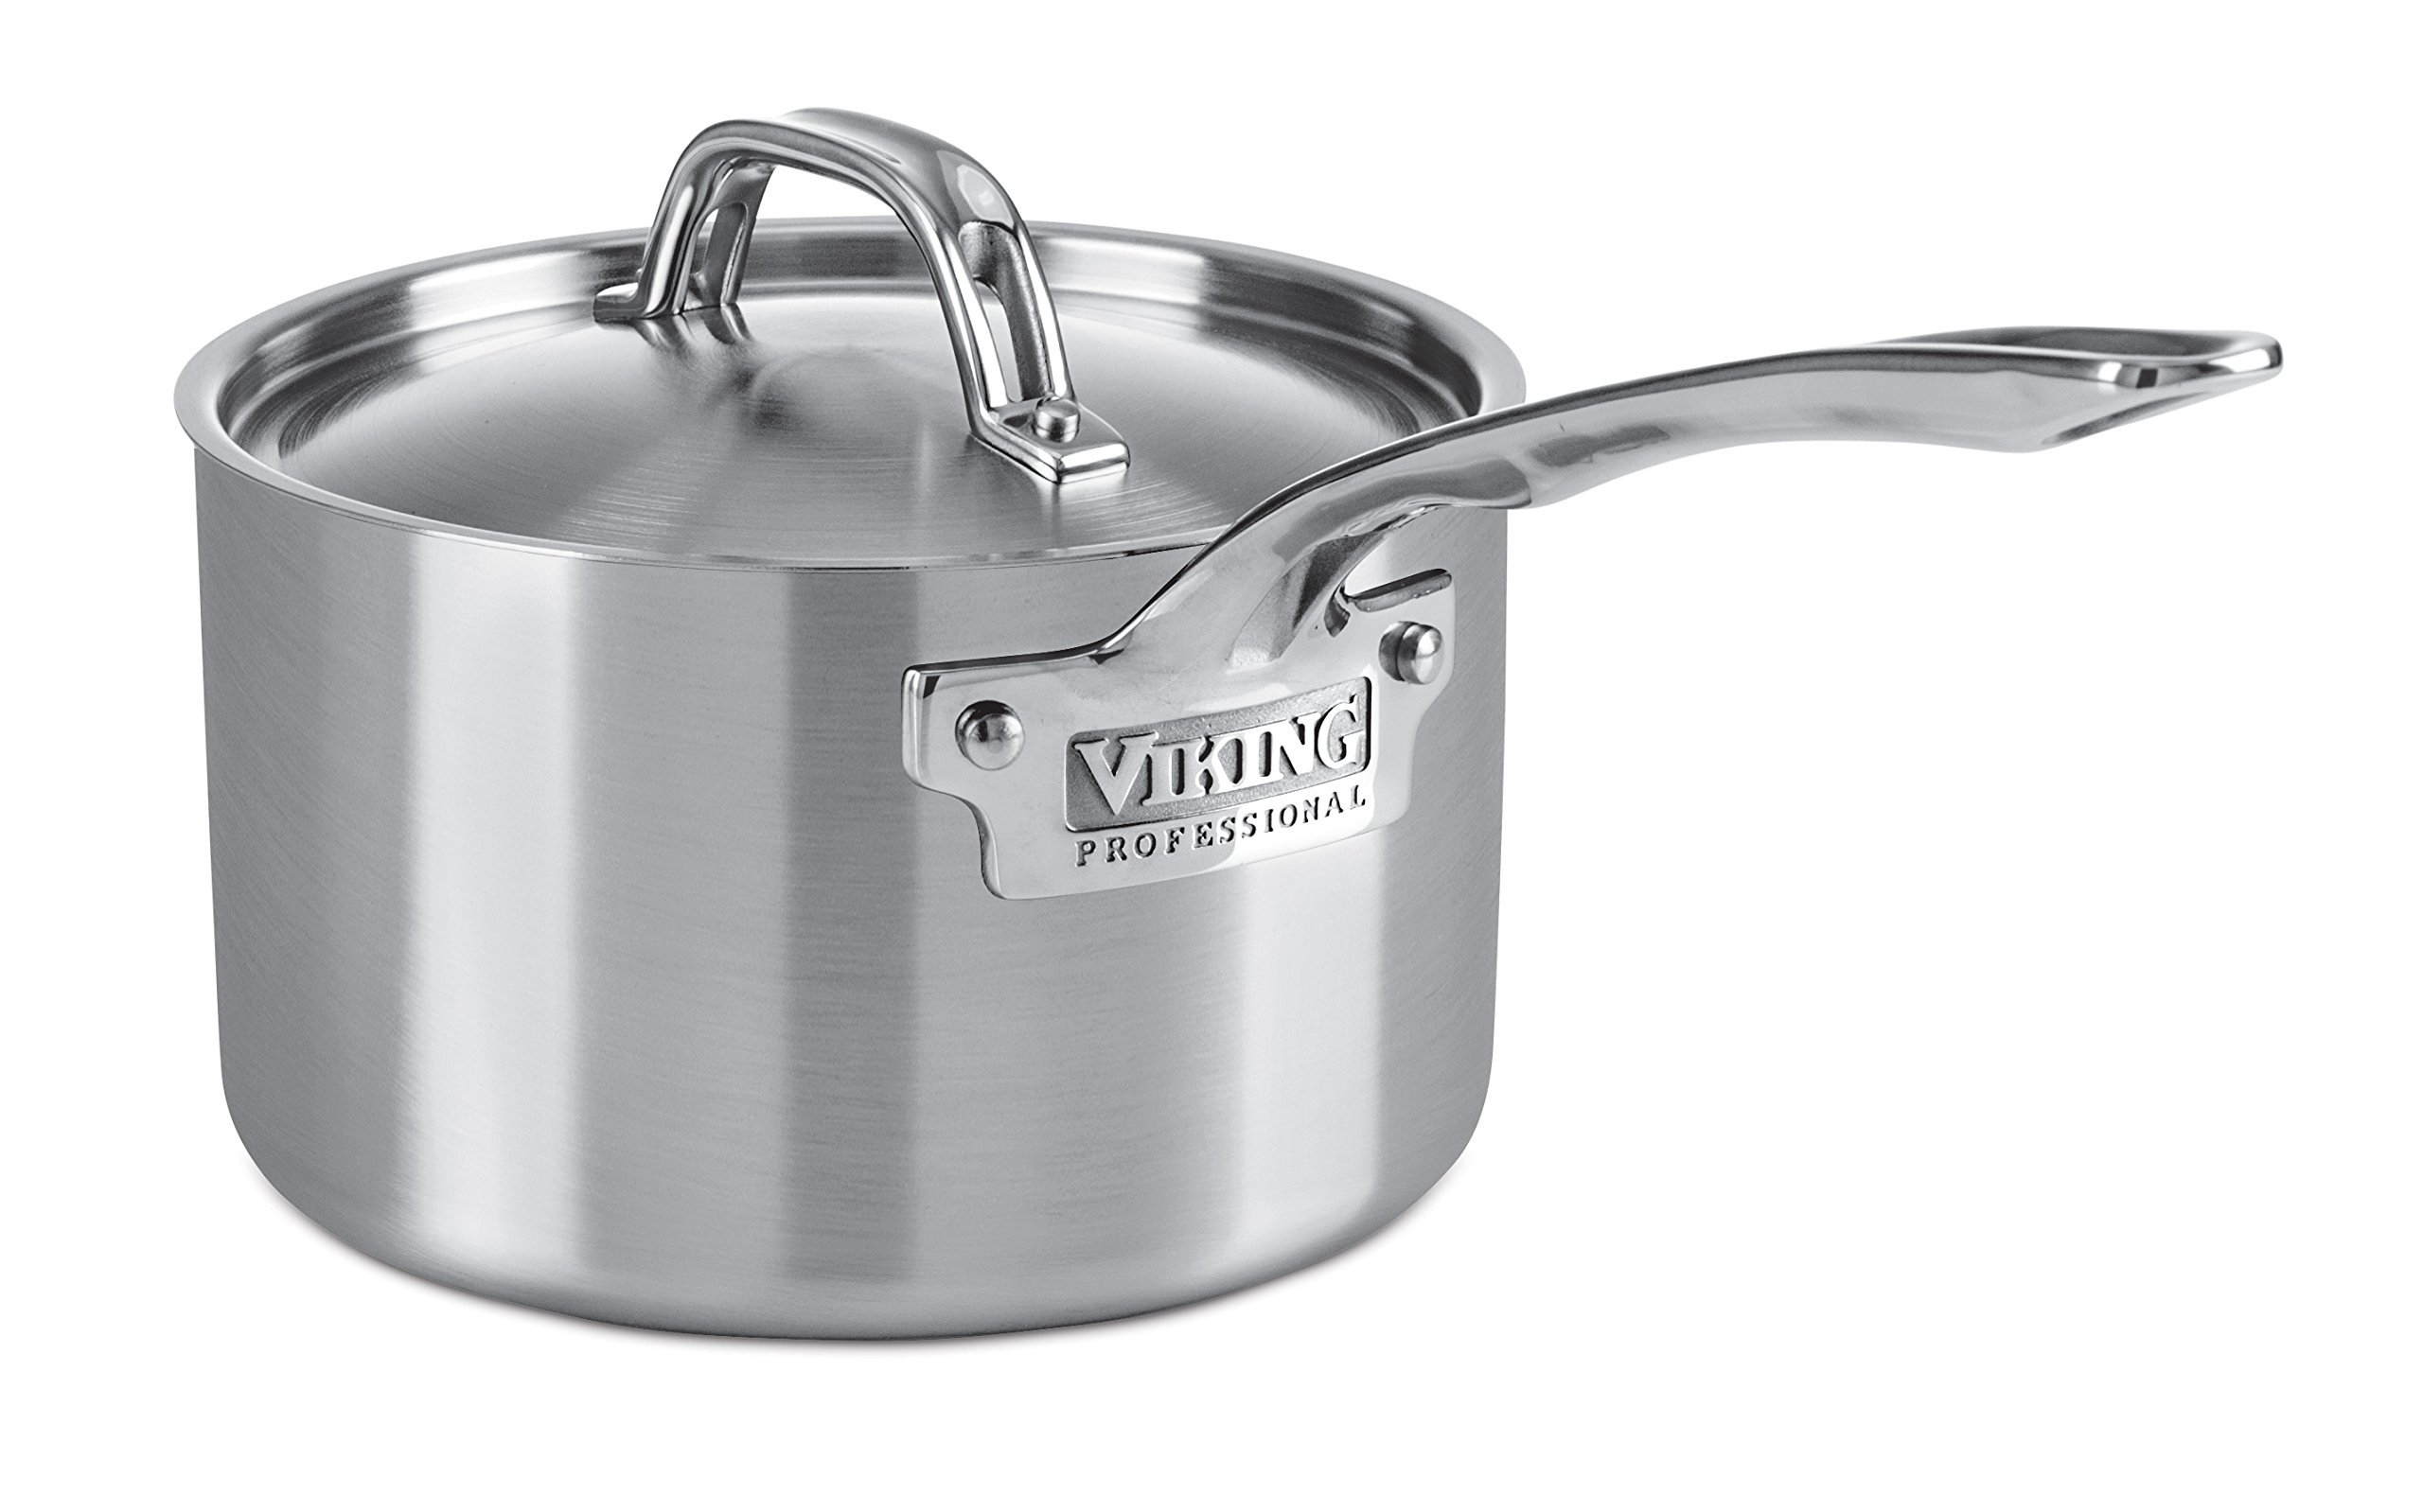 Viking Professional 5-Ply Stainless Steel Saucepan, 3 Quart